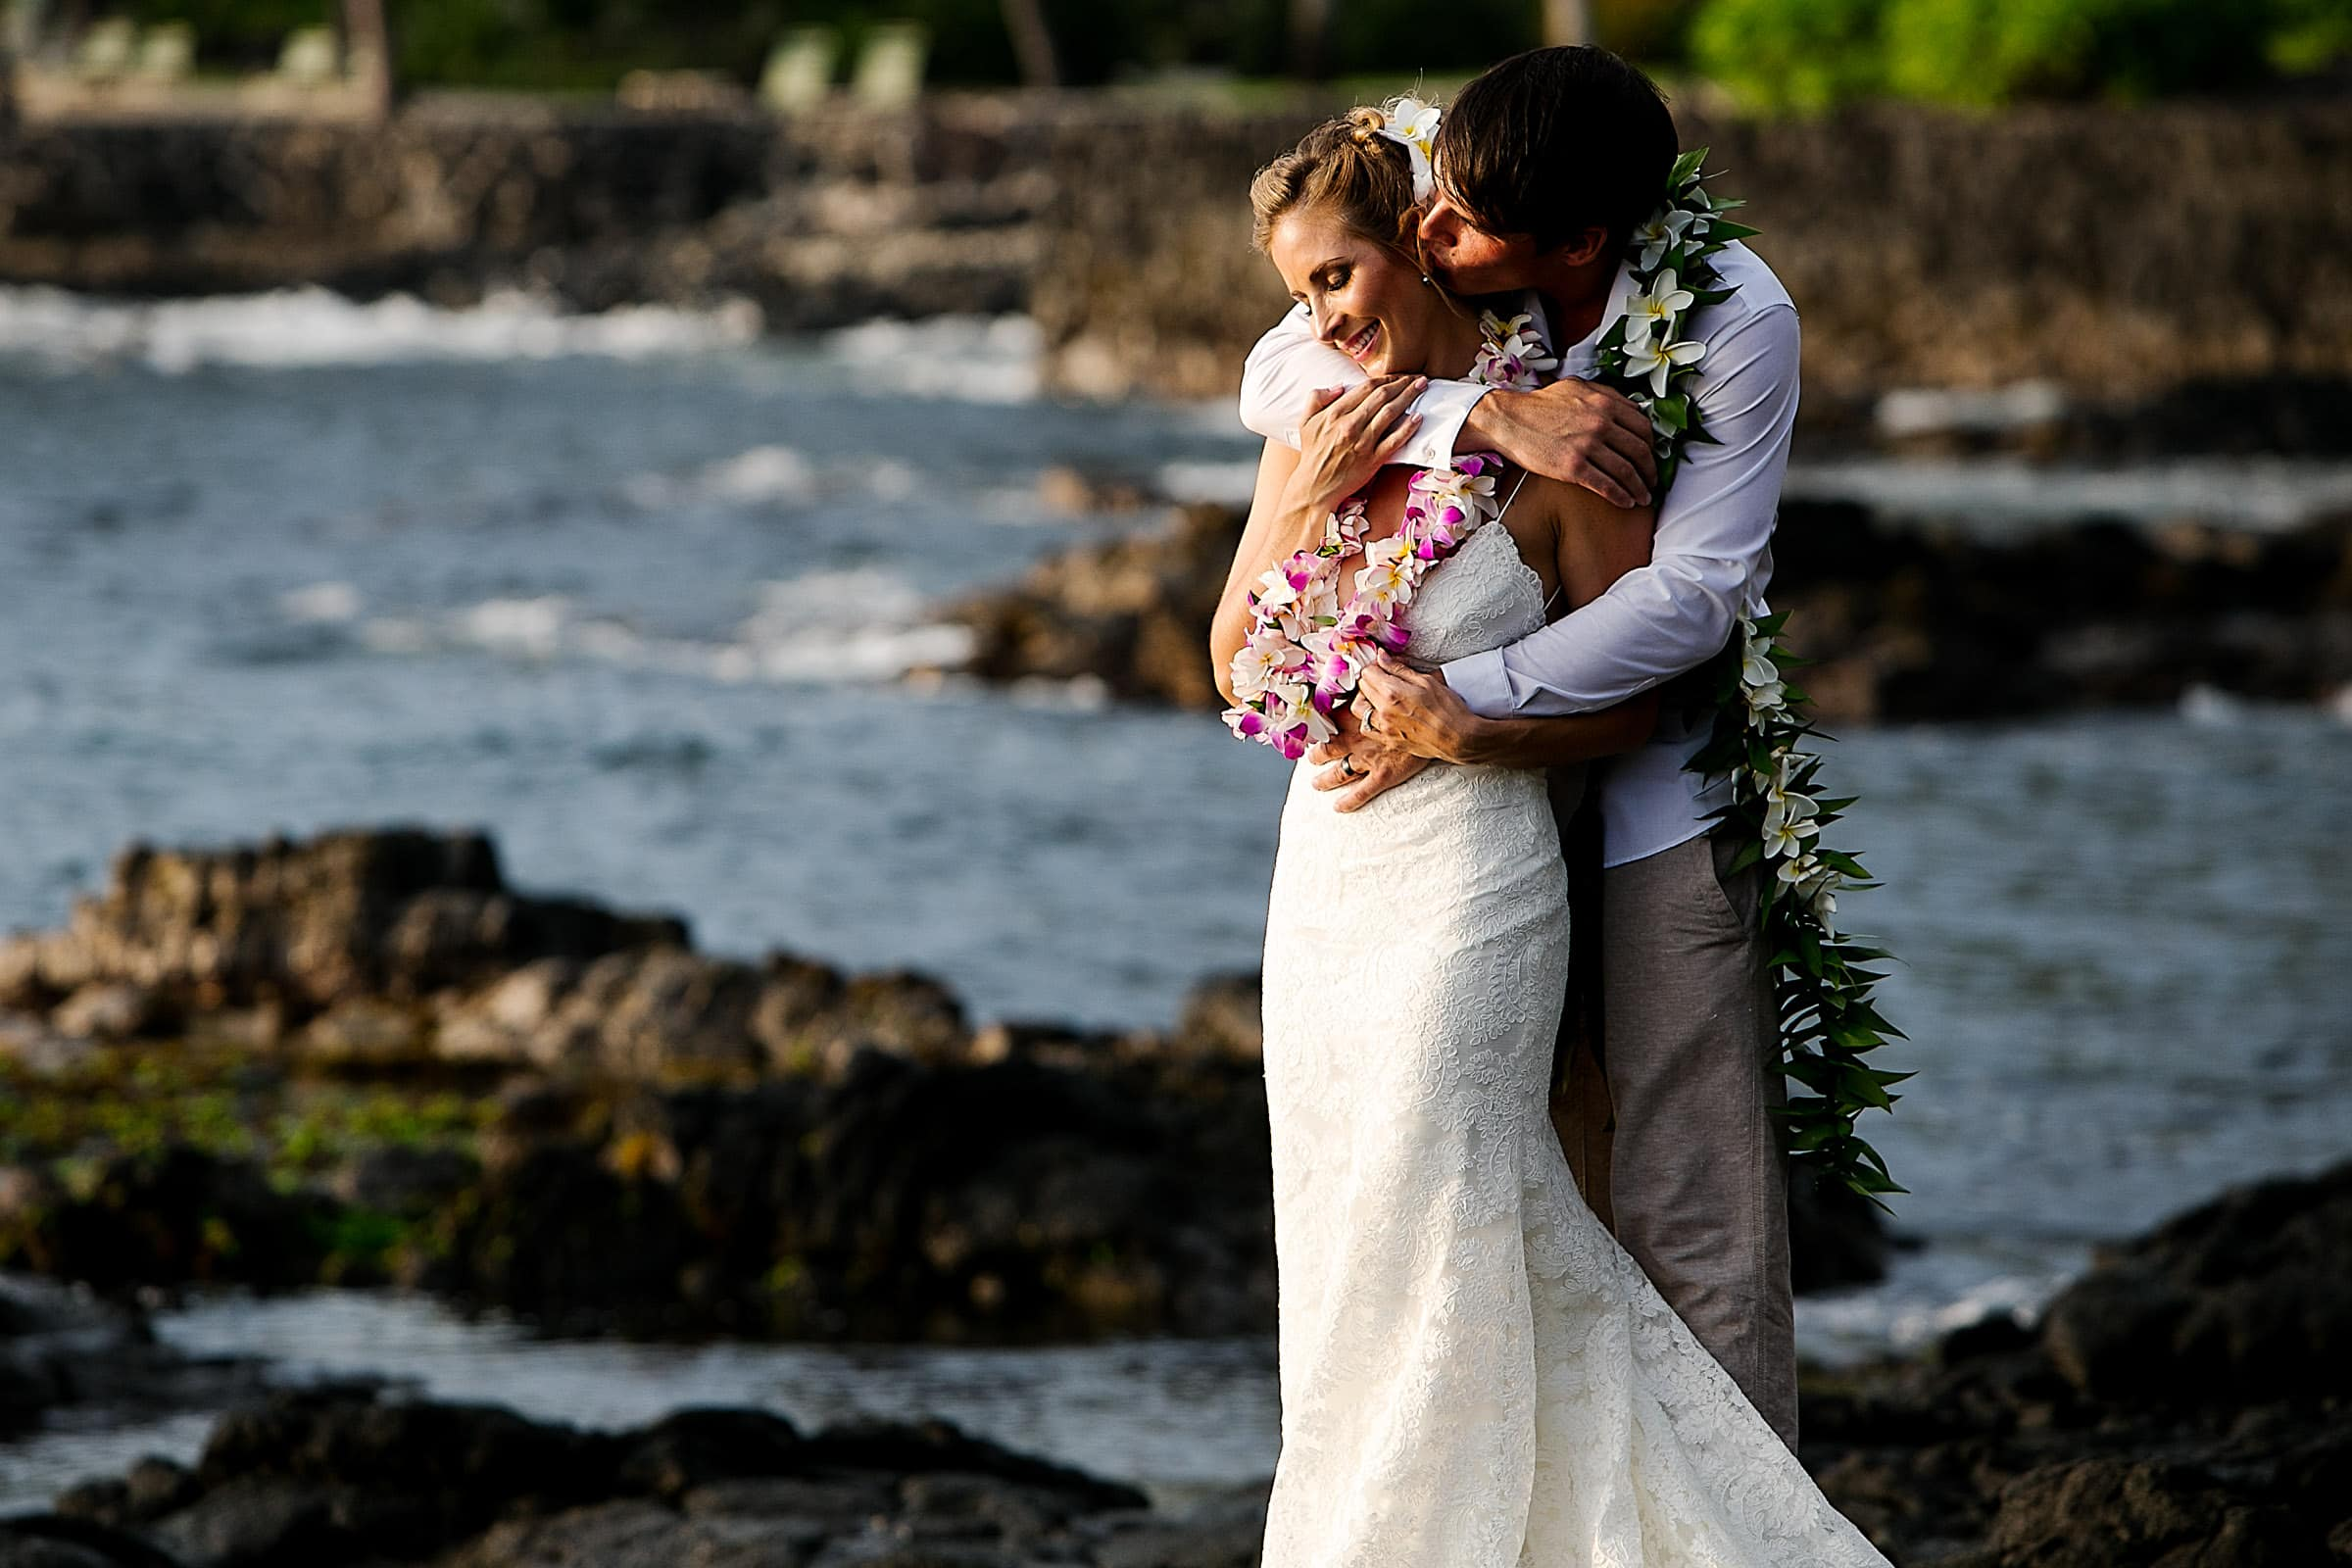 Bride and groom embracing near the ocean during their Kailua Kona Wedding at the Kona Beach Bungalows on the Big Island of Hawaii